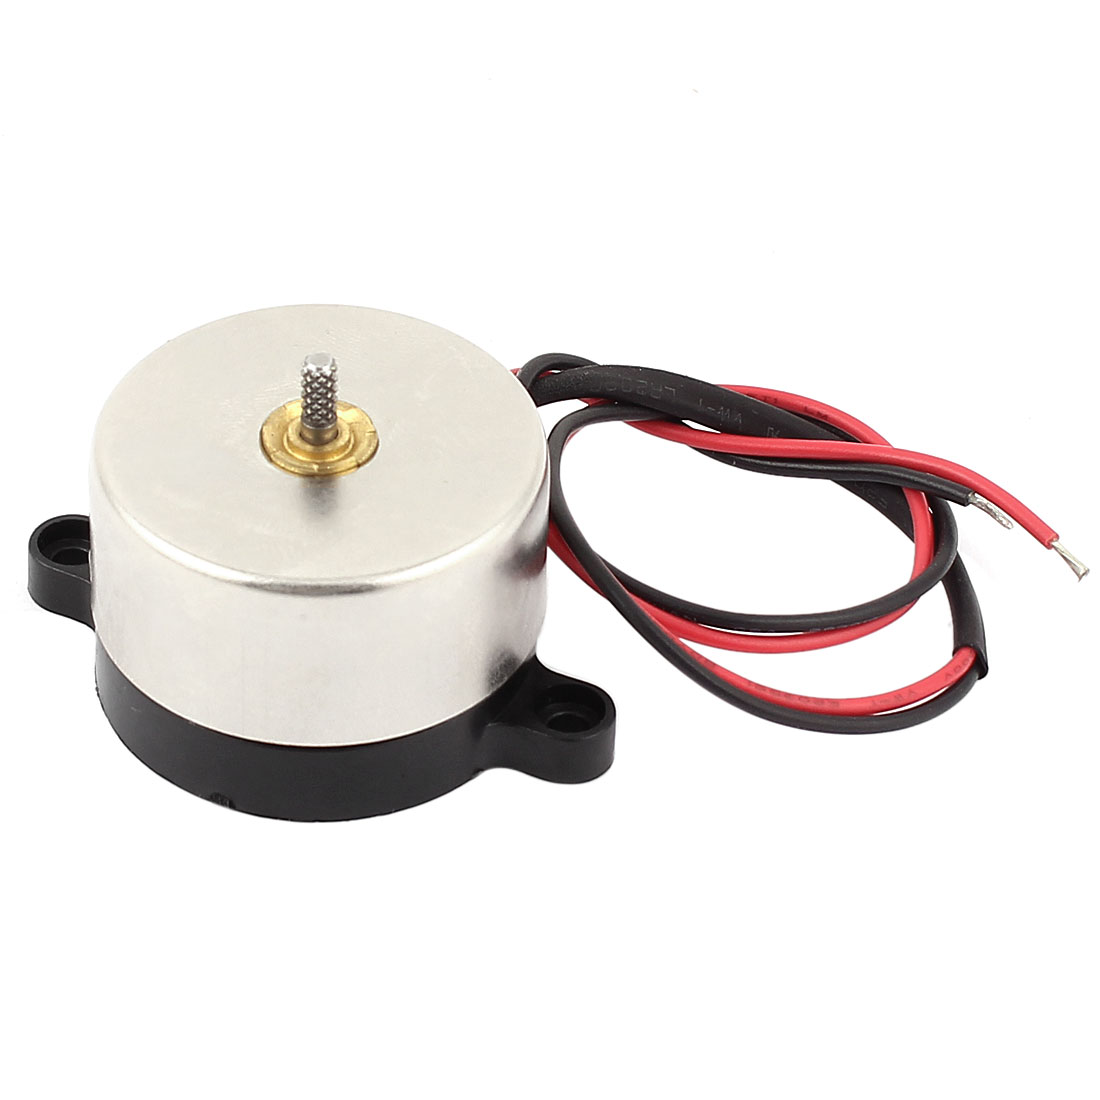 DC 12V 4150RPM 3mm Dia Shaft Exterior Rotor DC Brushless Motor